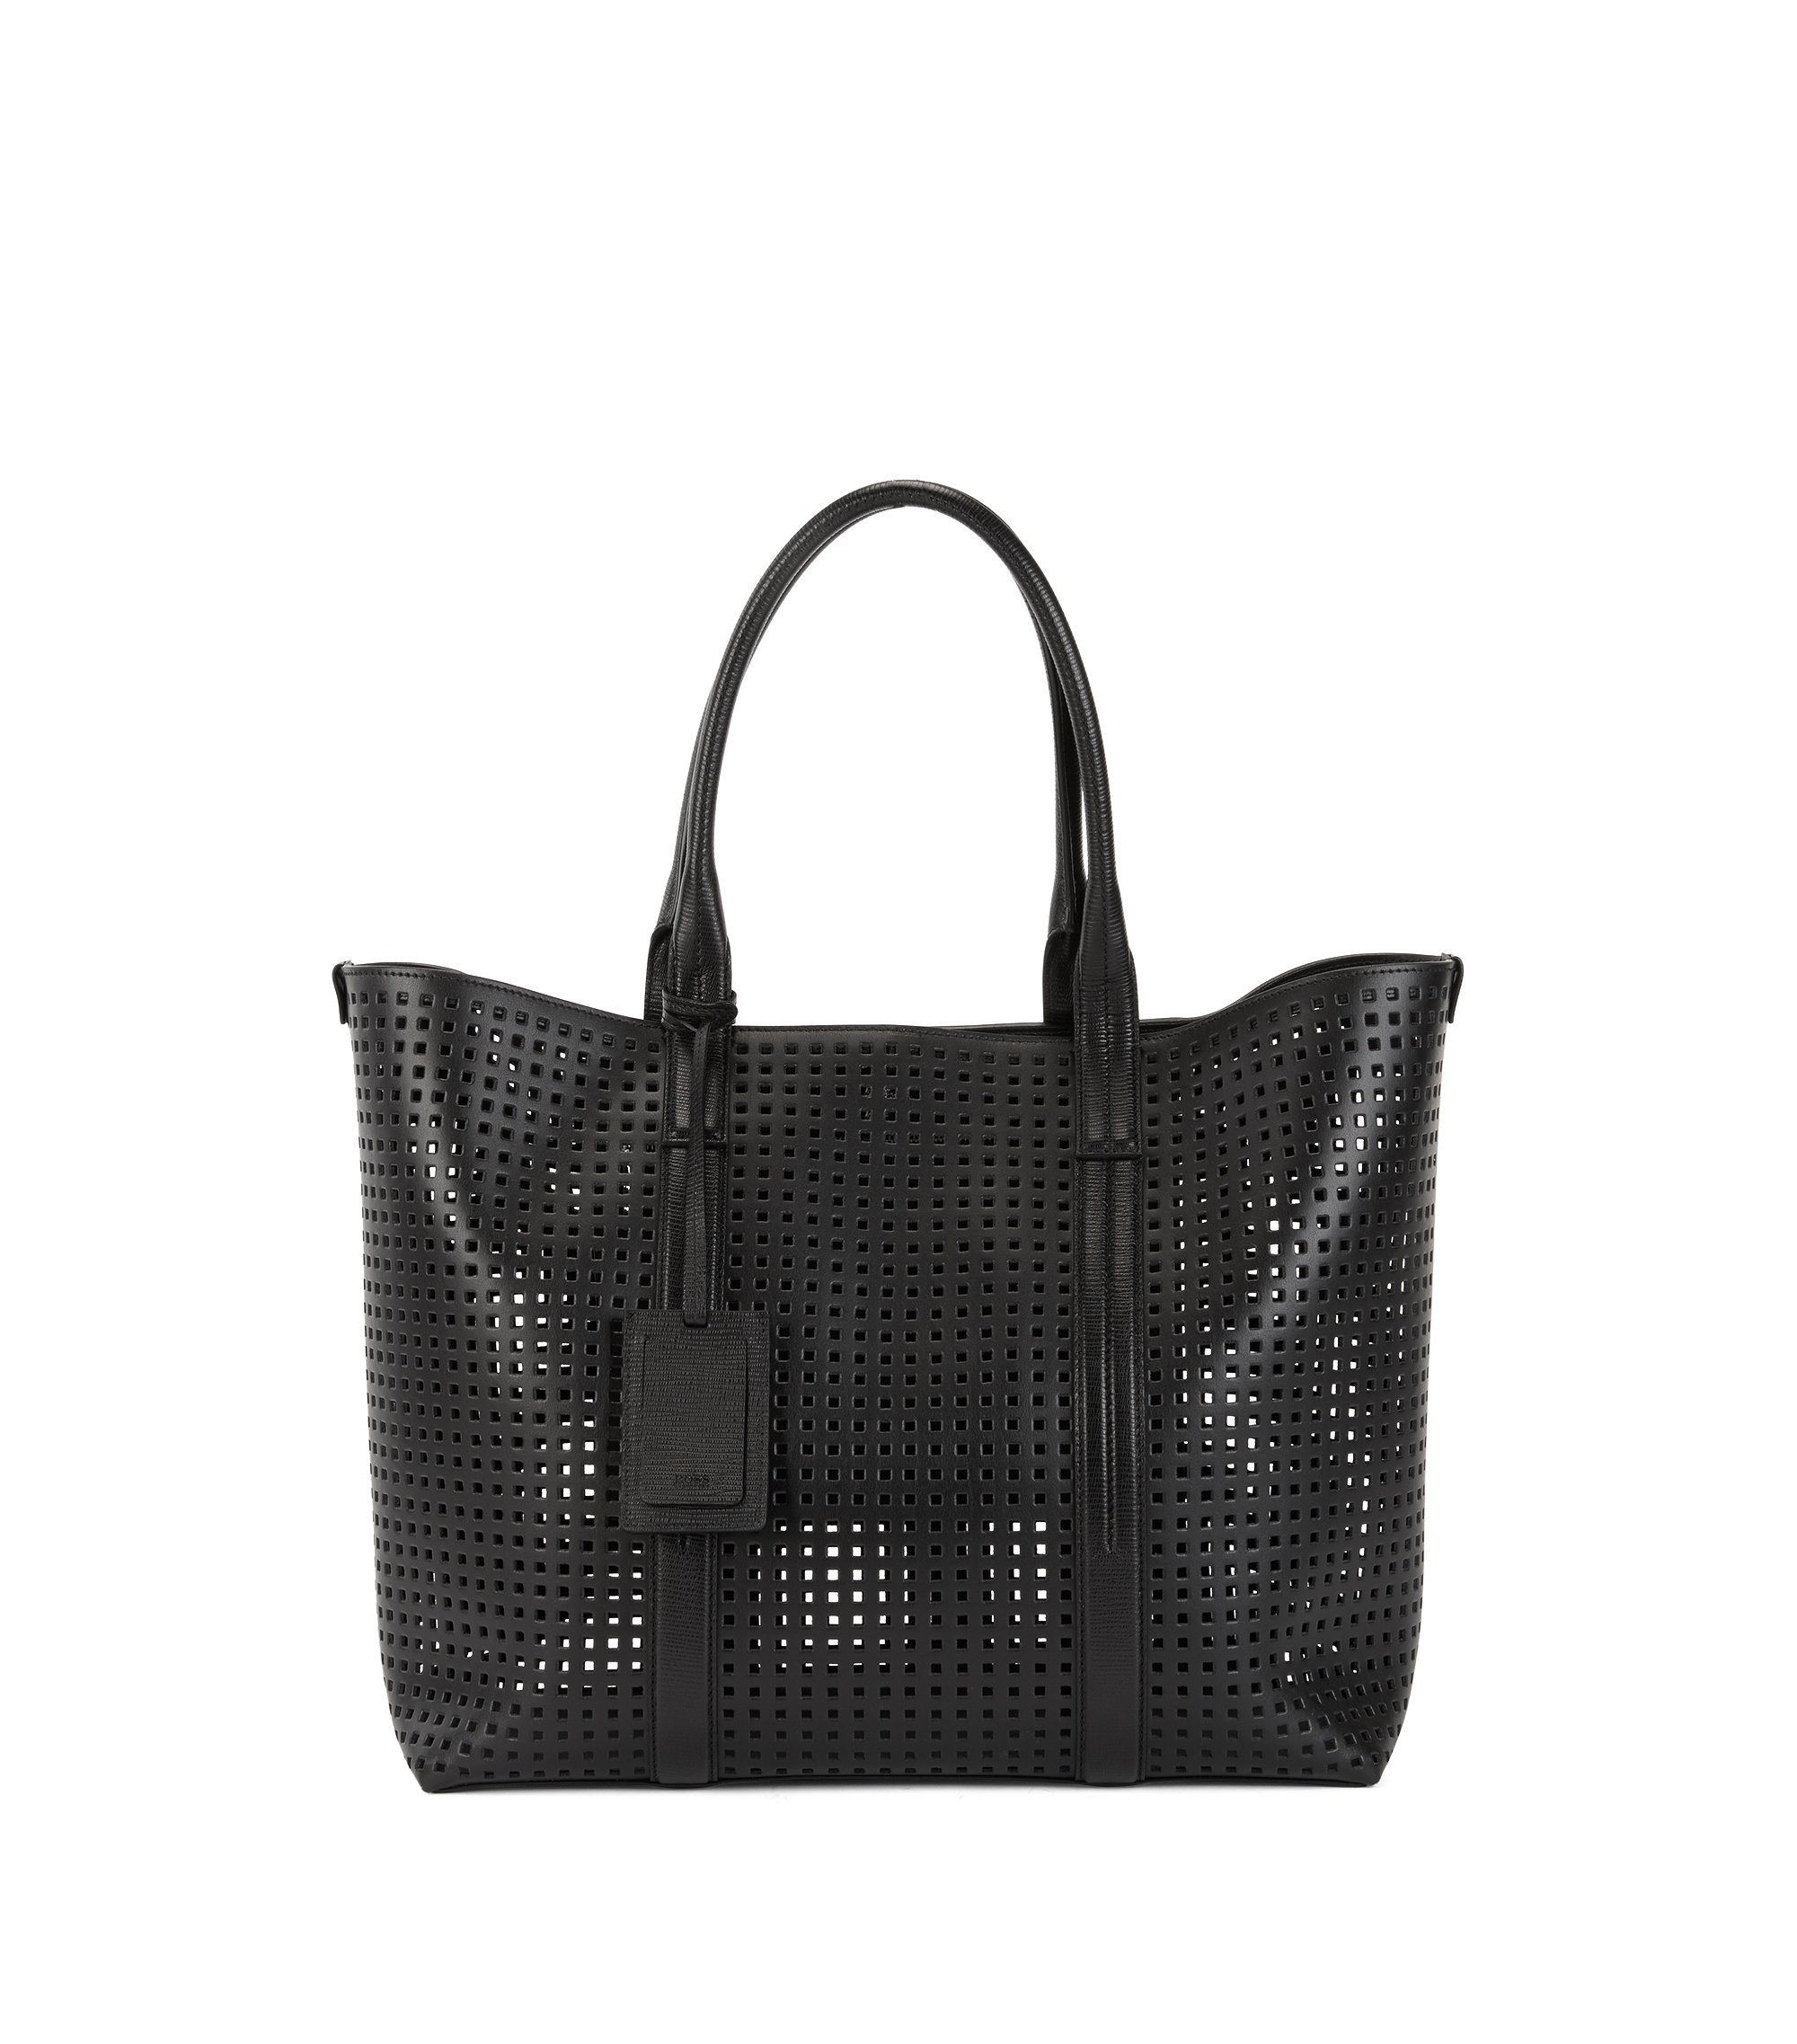 Perforated Italian leather tote bag, Black